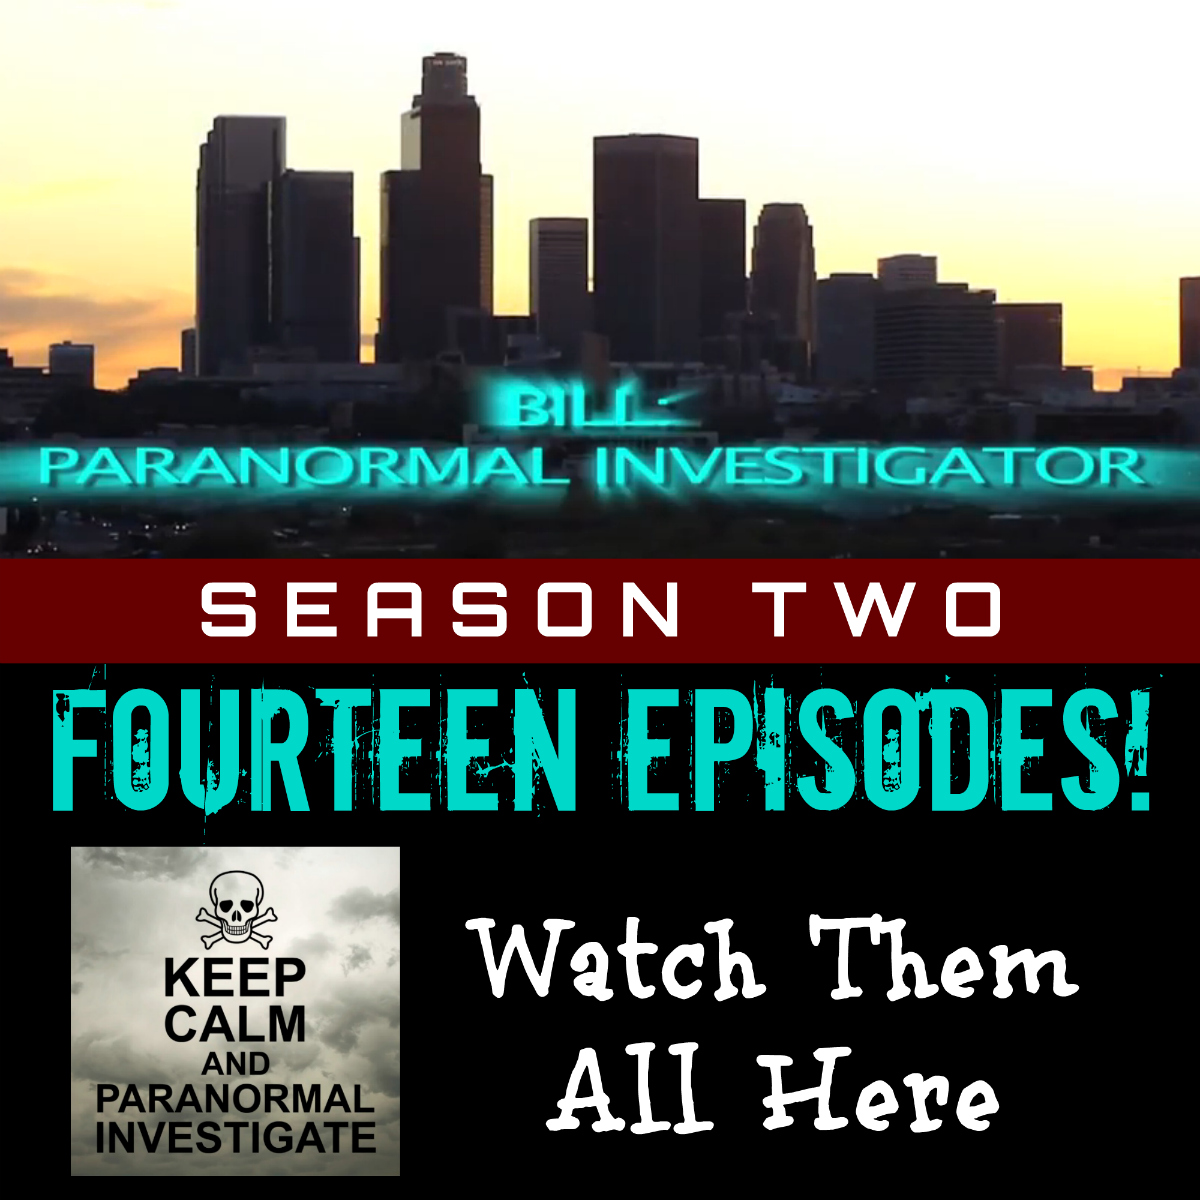 Paranormal Investigator Season Two